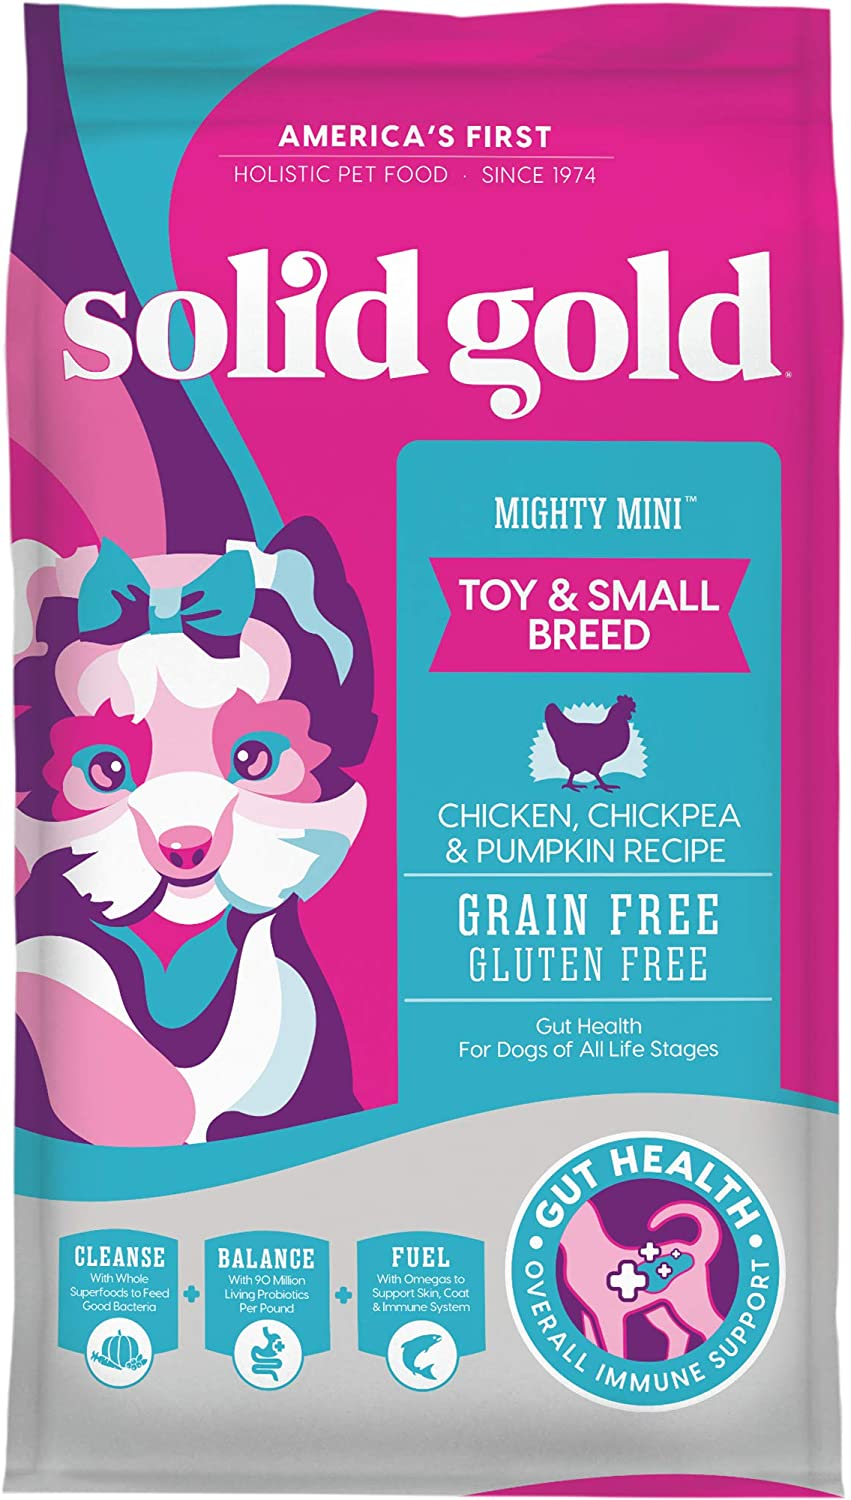 Solid Gold Small & Toy Breed Wet & Dry Dog Food